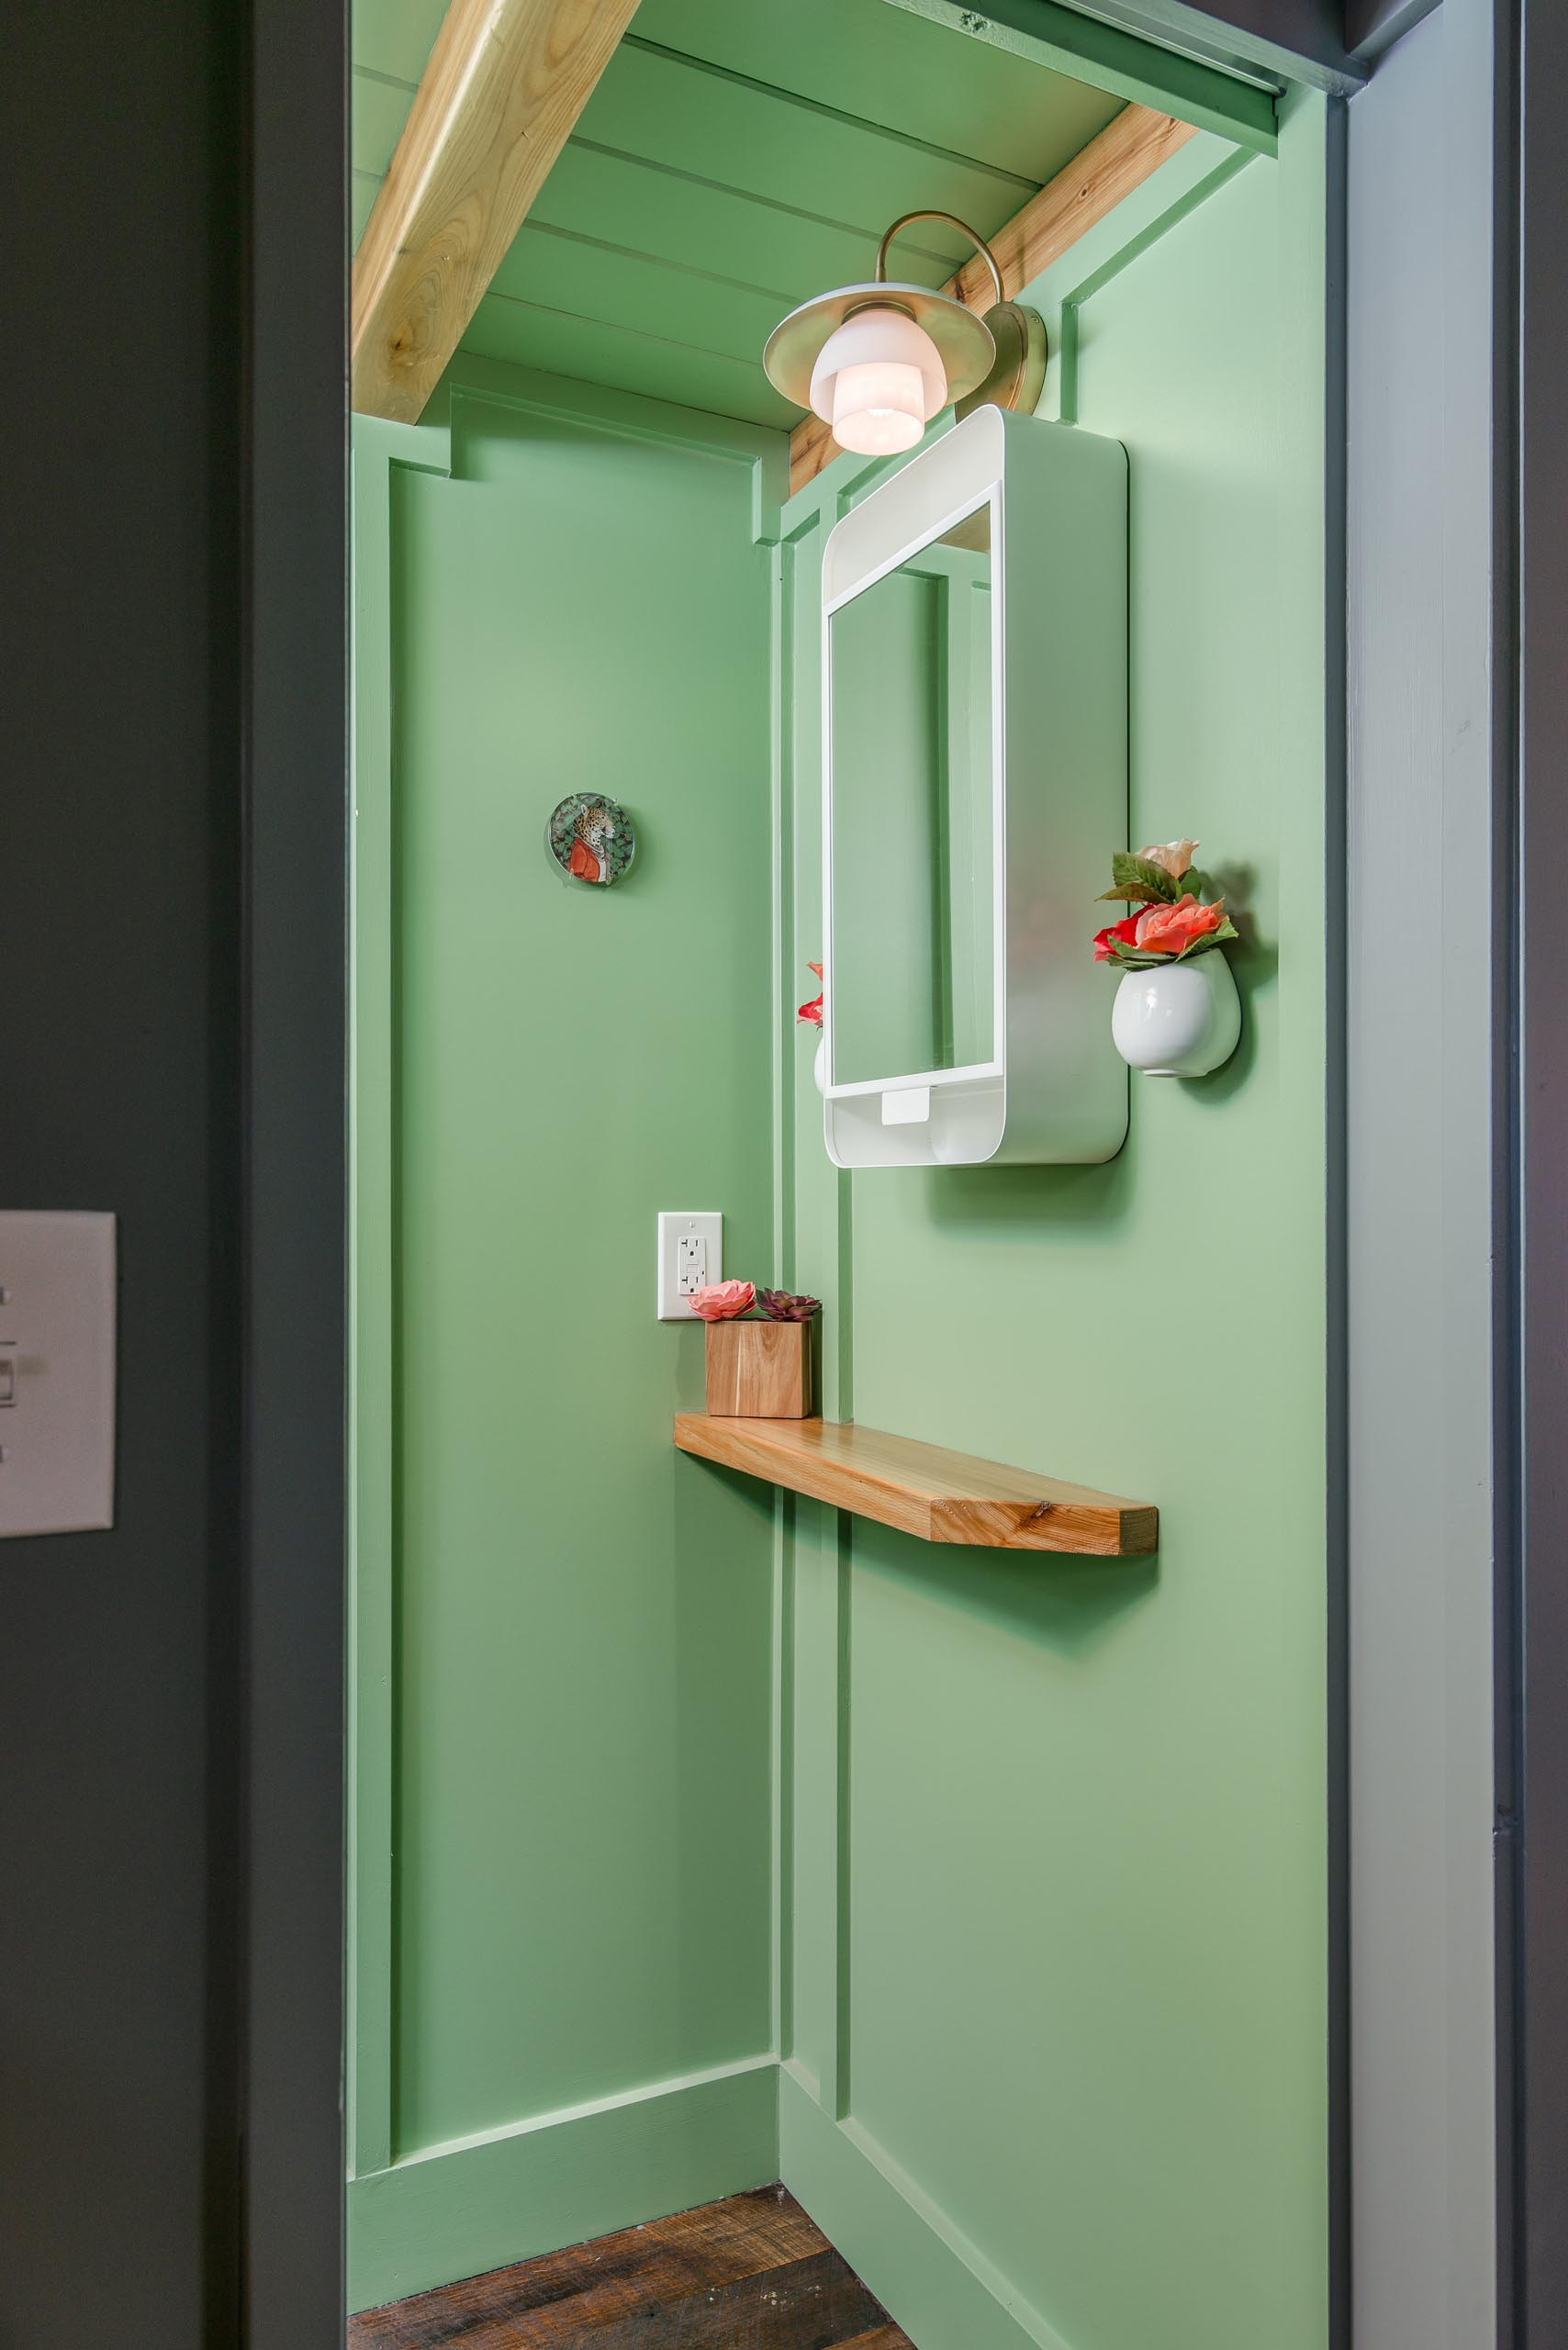 This tiny house bathroom hides behind a sliding pocket door and includes a pastel green finish, a waterless toilet, vanity area, and a shower.